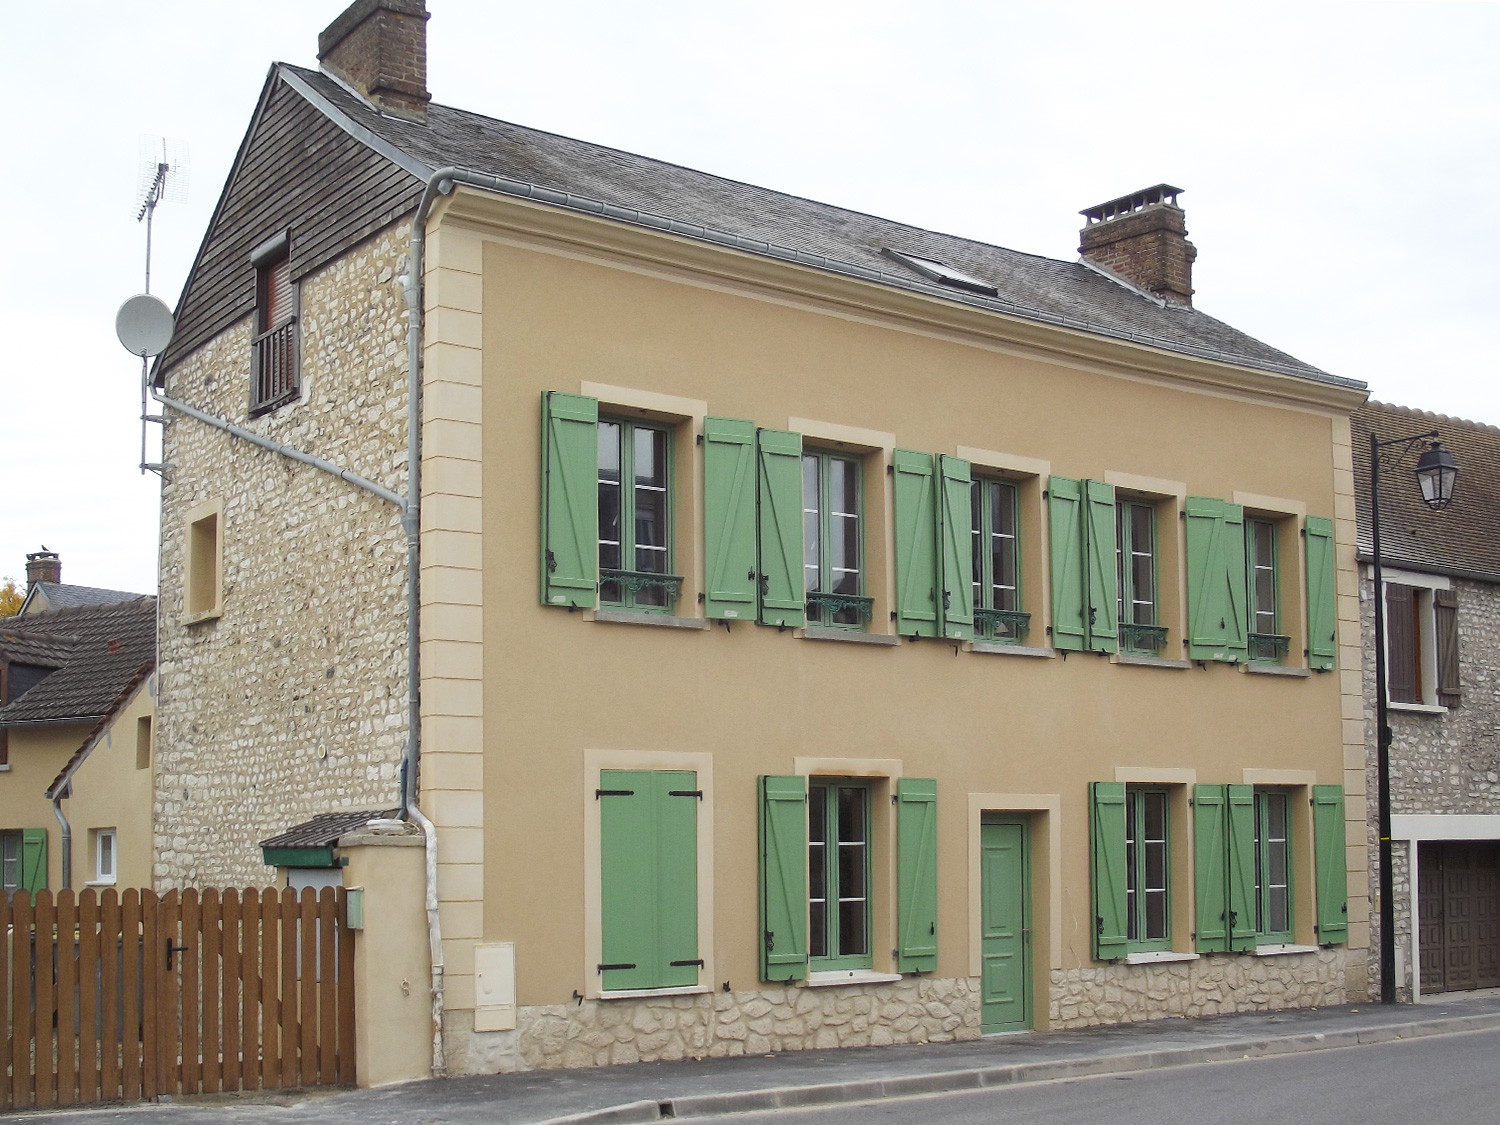 PROTECFACADE_RAVALEMENT_RENOVATION_ISOLATION_FACADE_NORMANDIE_LOUVIERS_ENDUIT_MUR_PIERRE_ANCIEN